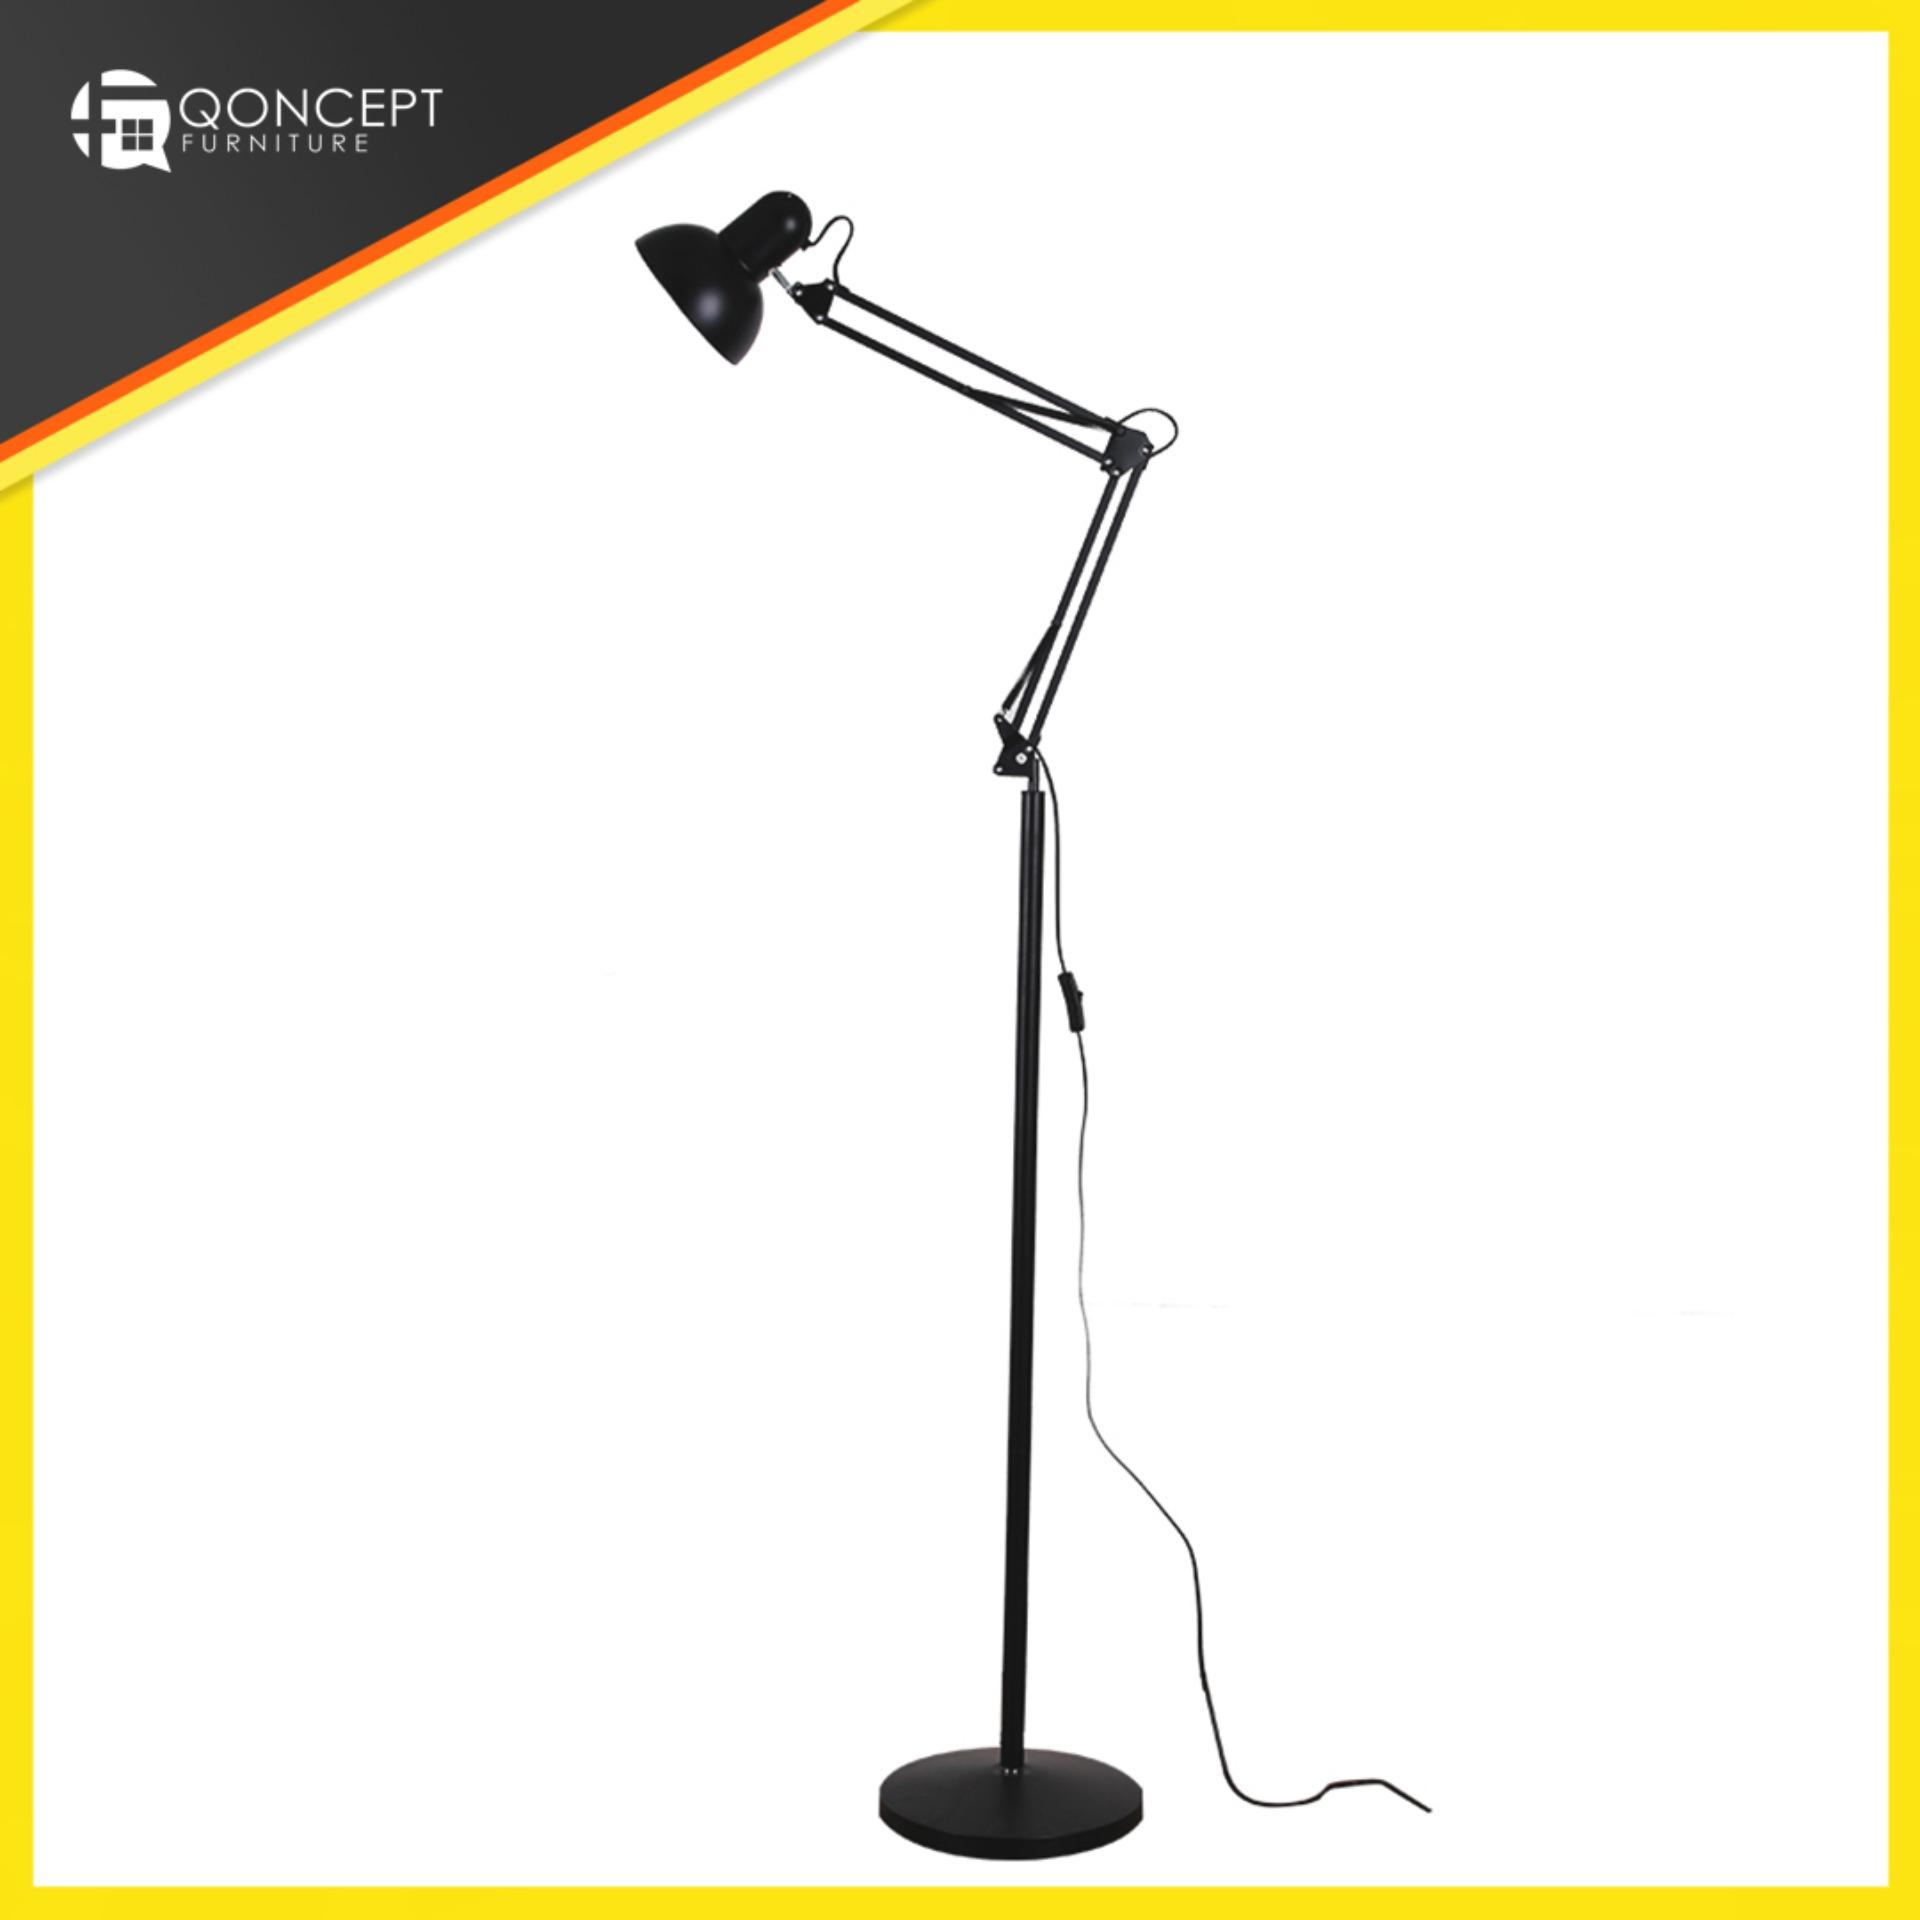 Floor Lamps For Sale Standing Lamp Prices Brands Review Wiring Diagram 6 Way Qoncept Furniture Adjustable Metal